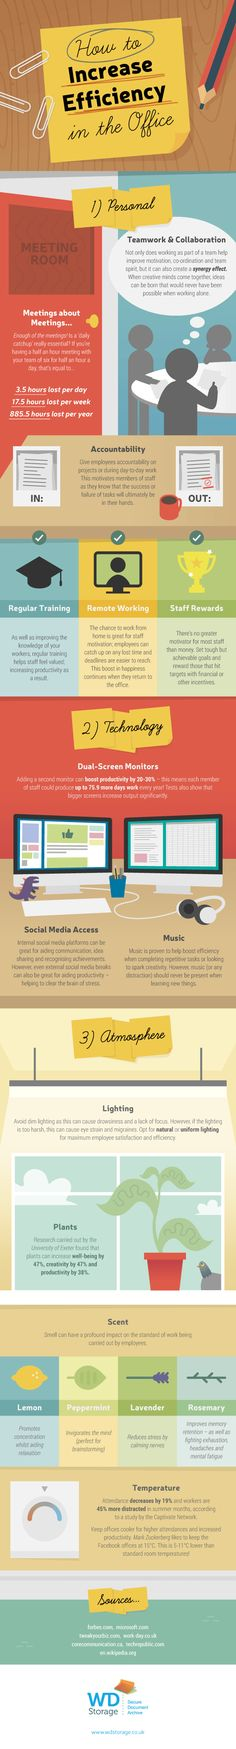 How to Increase Efficiency in the Office #infographic #Business #Office…